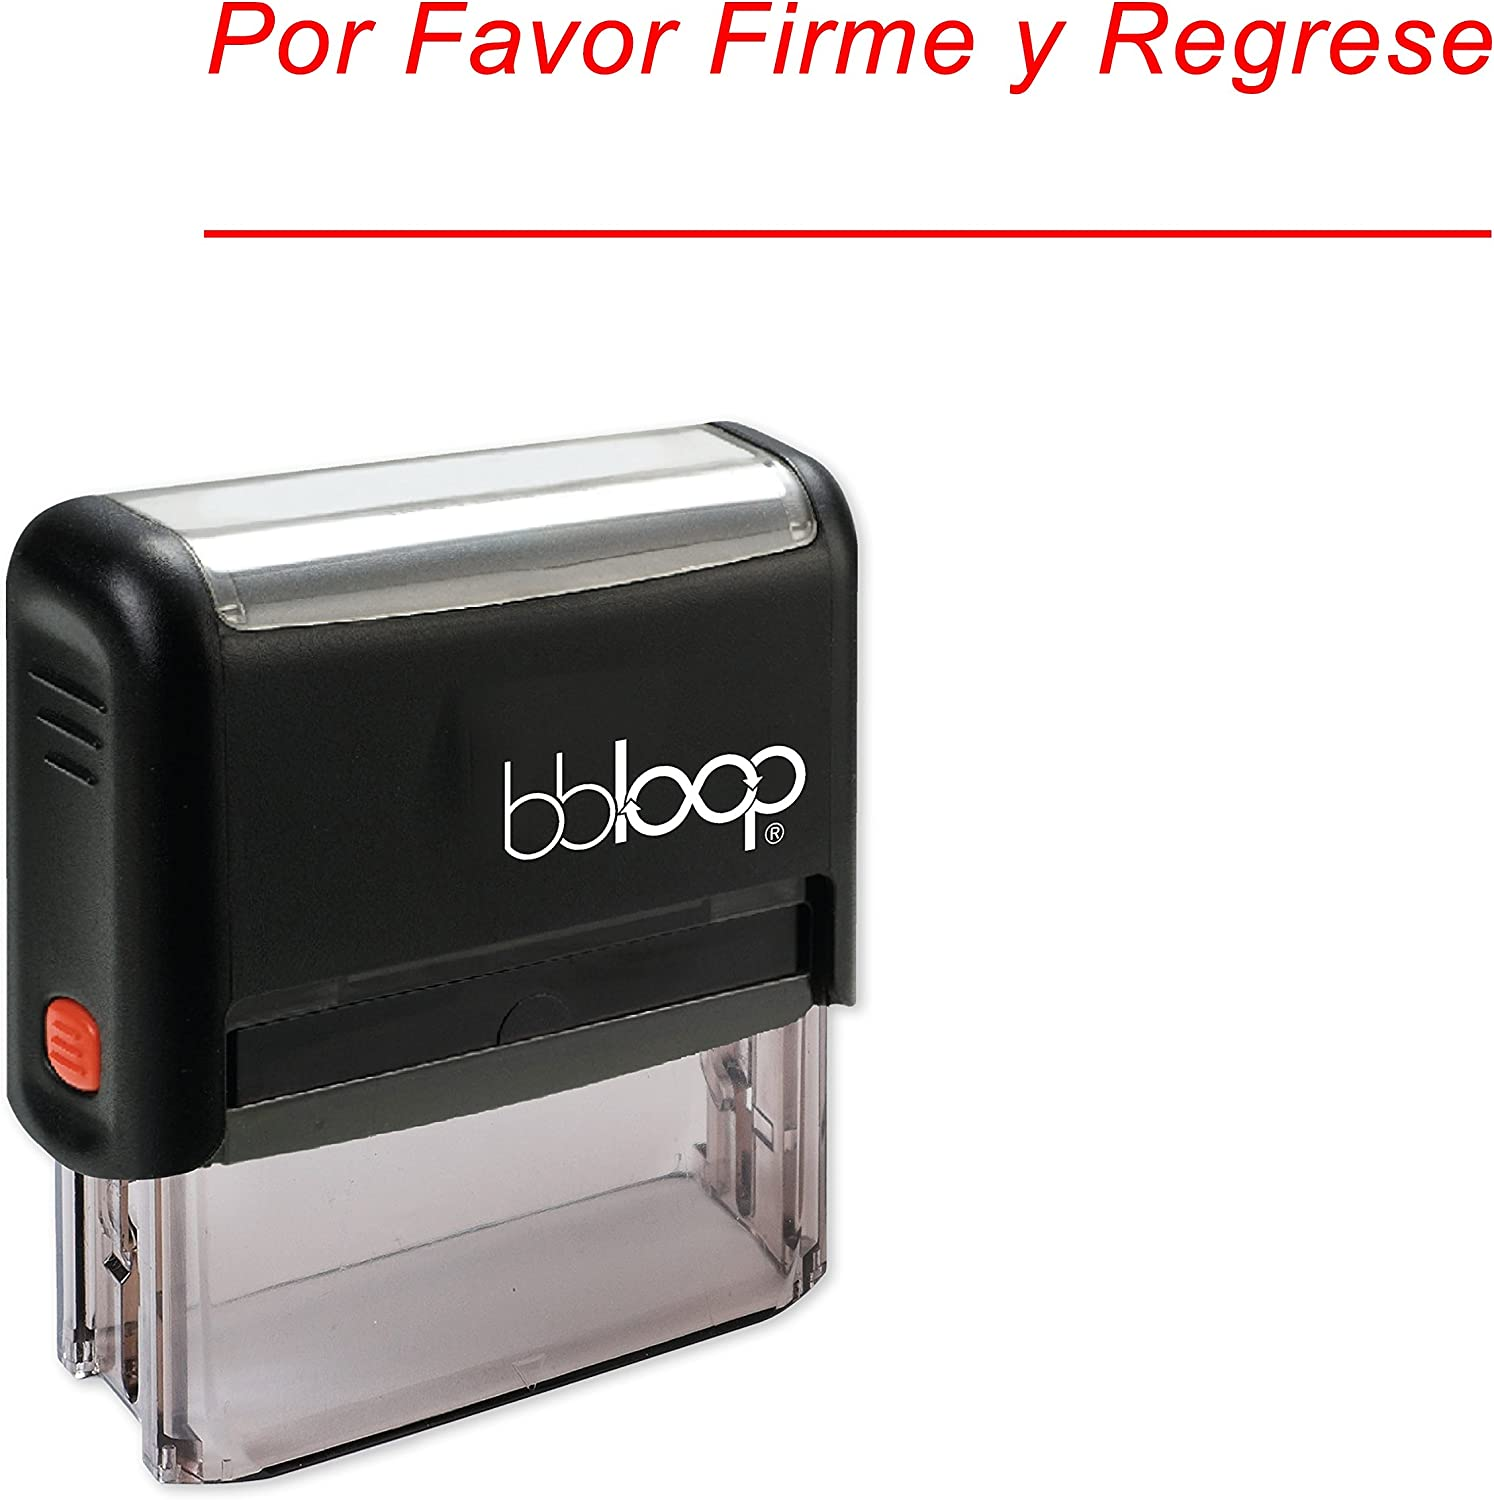 """""""Por Favor Firme Y Regrese Stamp in Spanish"""" Self-Inking Rubber-Stamp"""